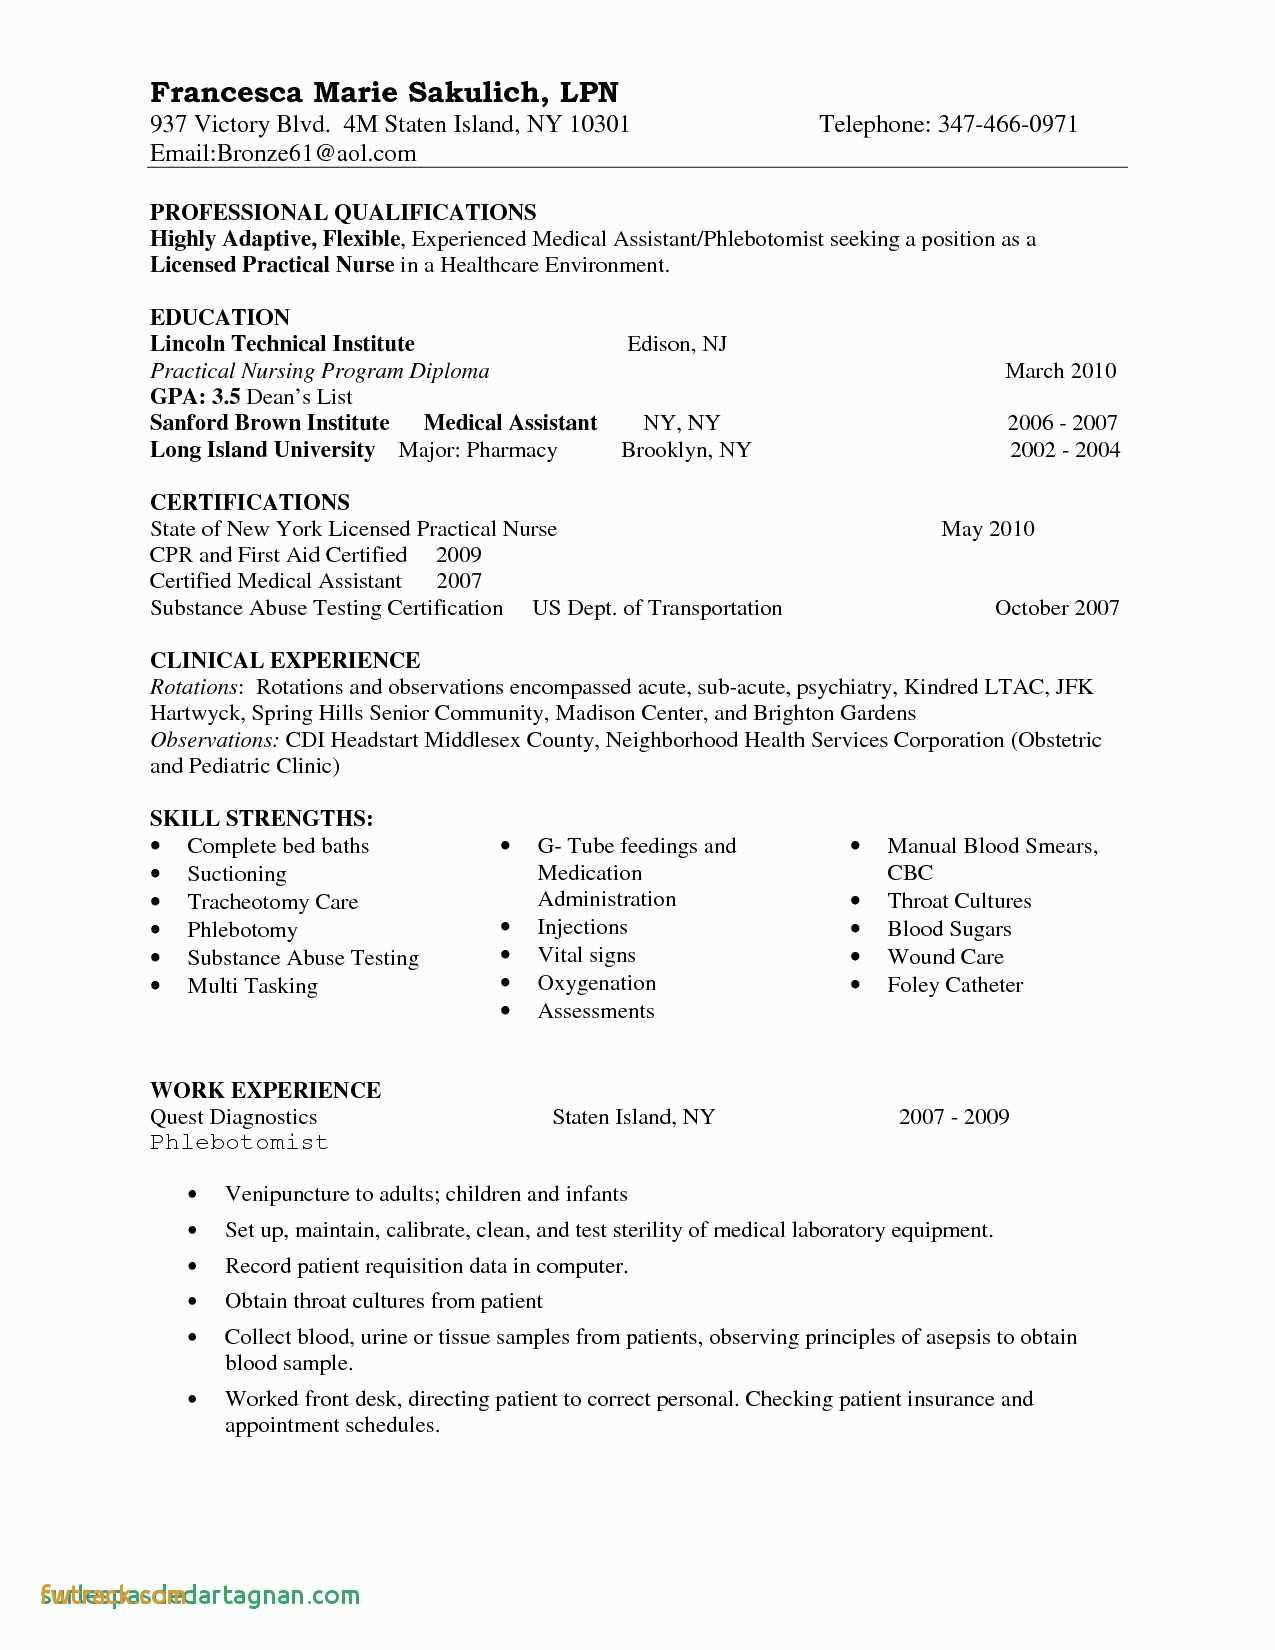 Lvn Skills for Resume - Nurse Resume Template Fwtrack Fwtrack